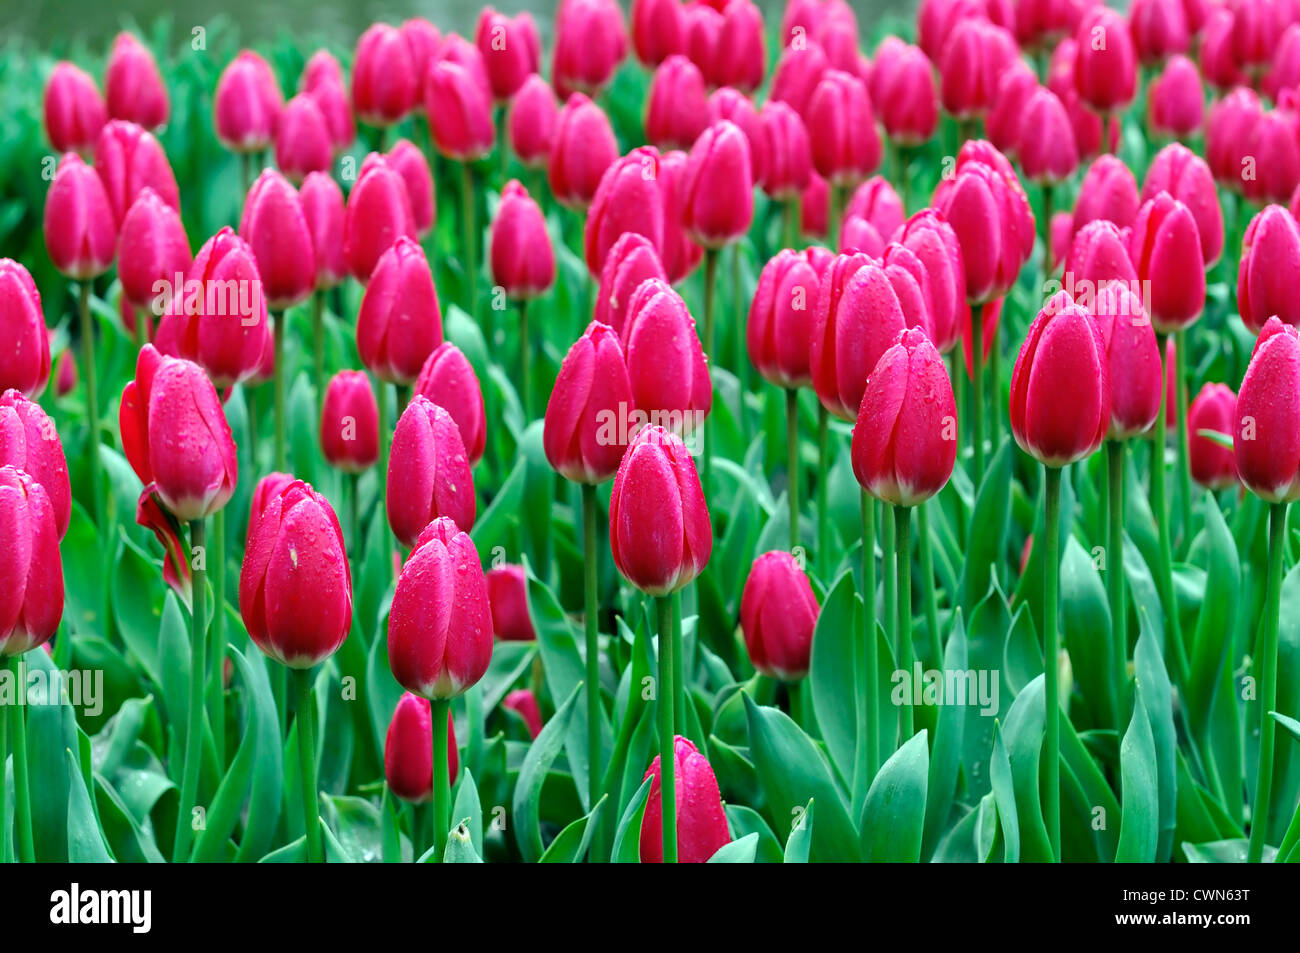 Tulip Delight Stock Photos Tulip Delight Stock Images Alamy